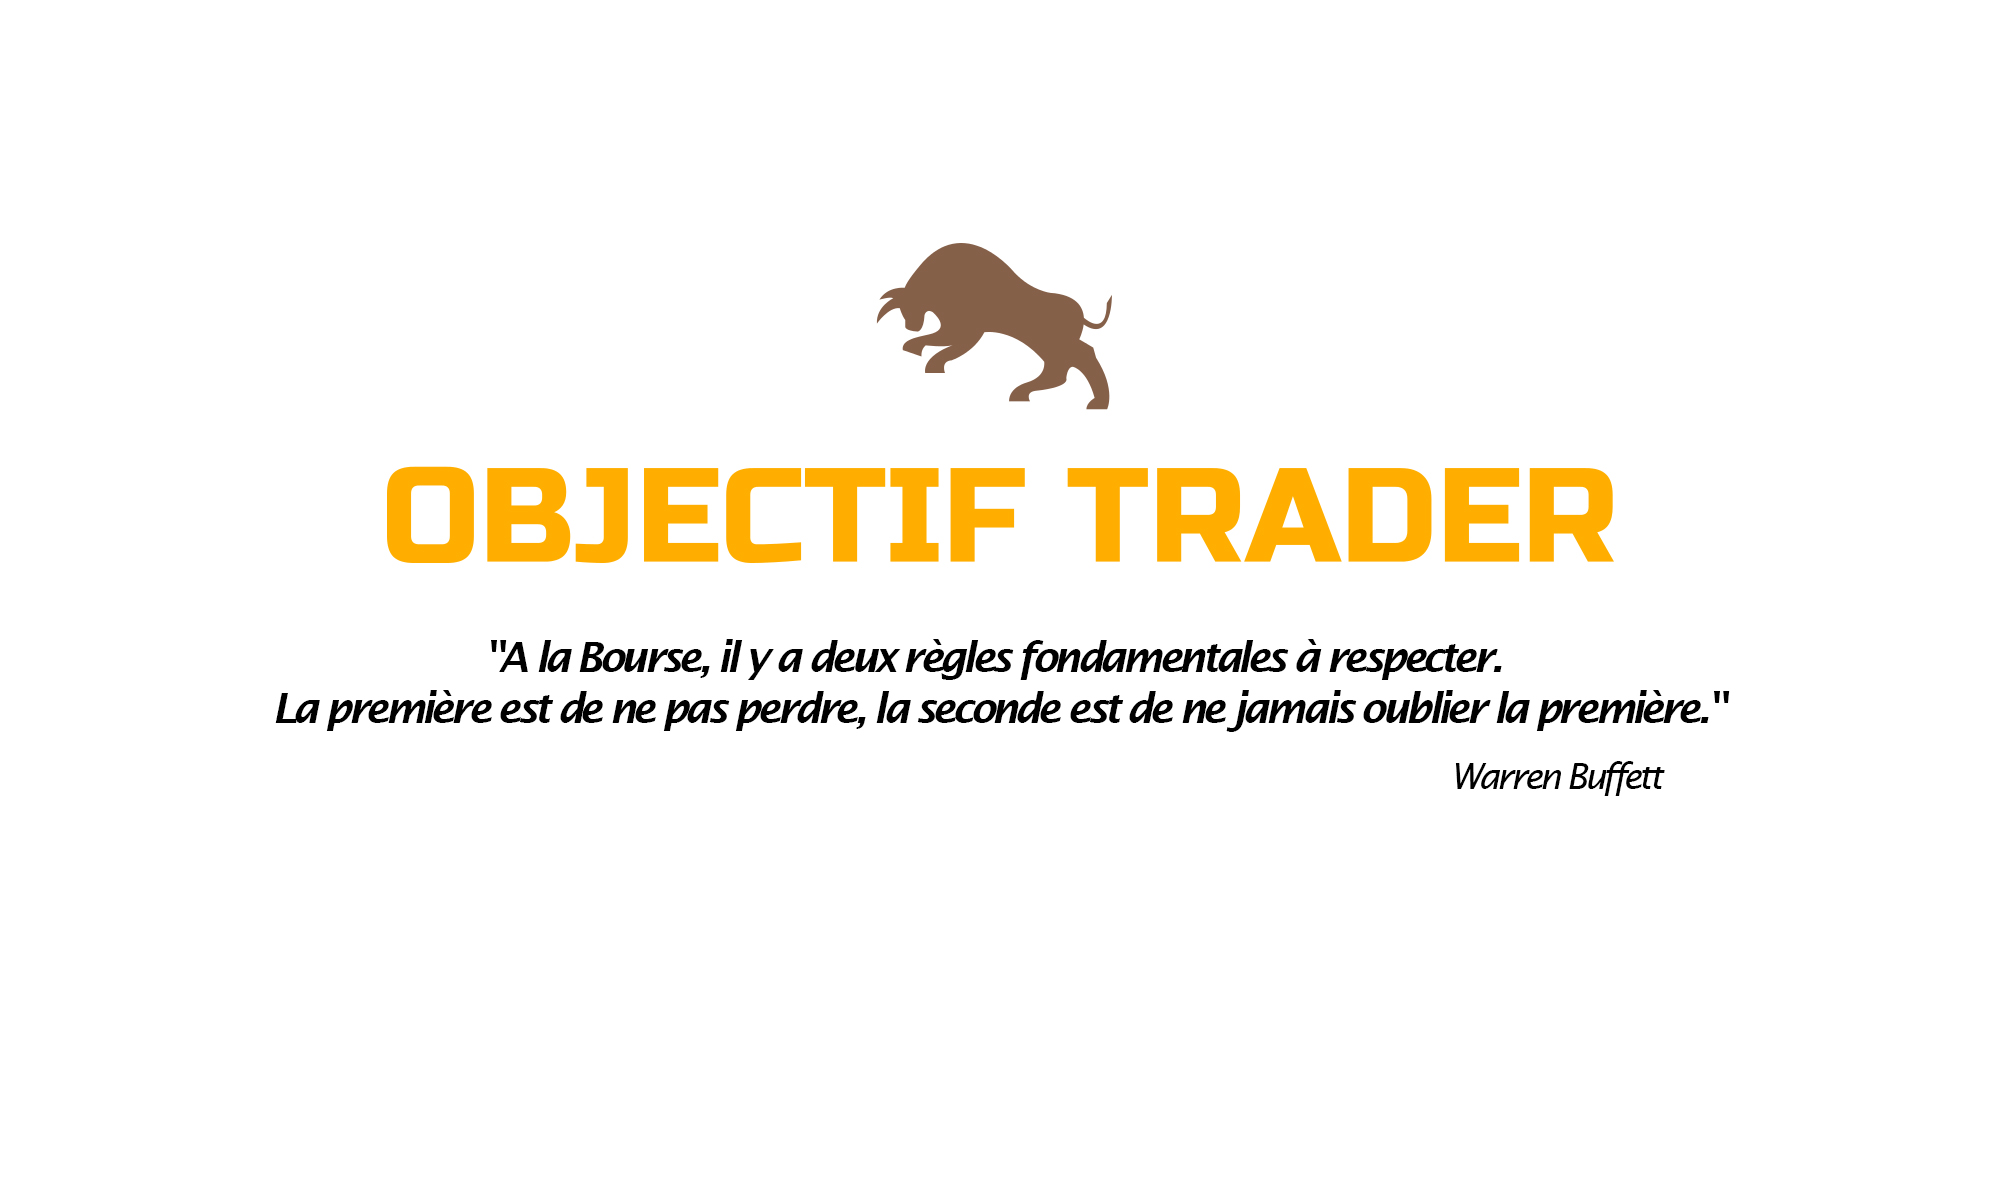 Objectif Trader - Le site